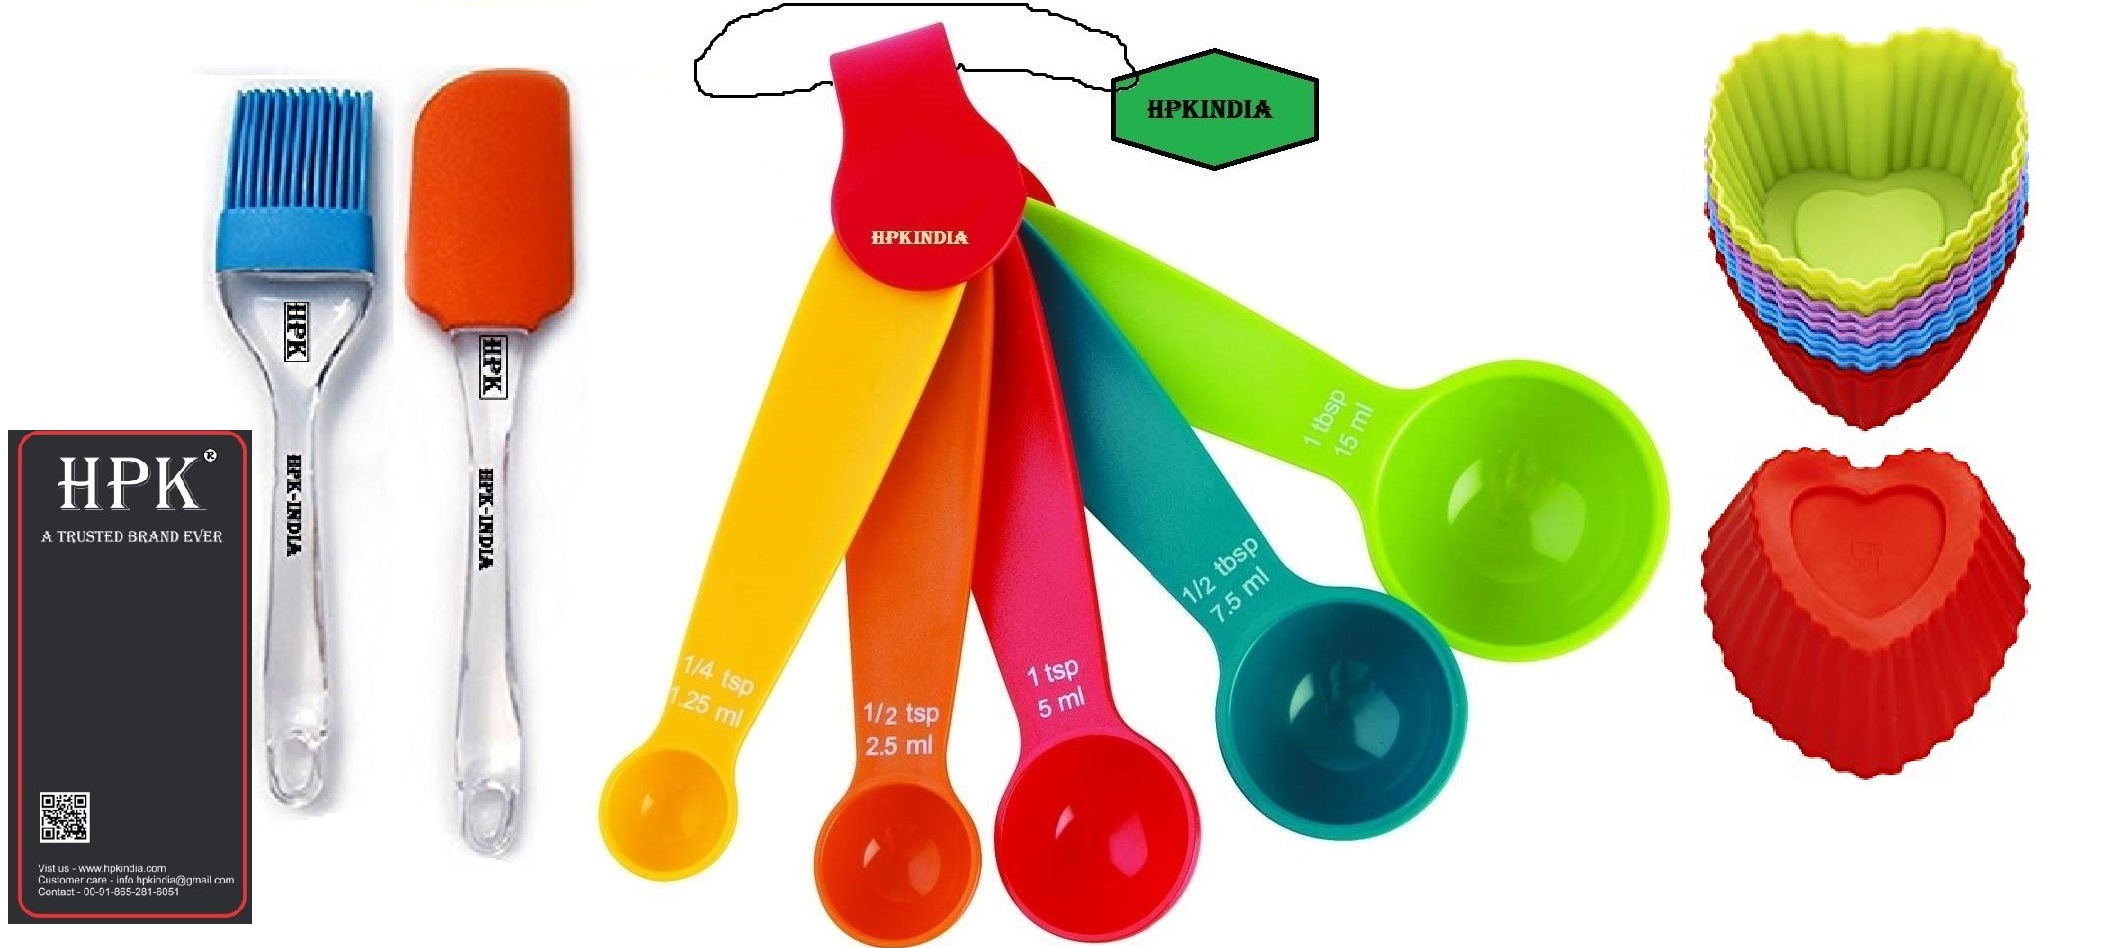 hpk-Baking-Measurement-Measuring-spoons-pastry brush and spatula Set heart molds